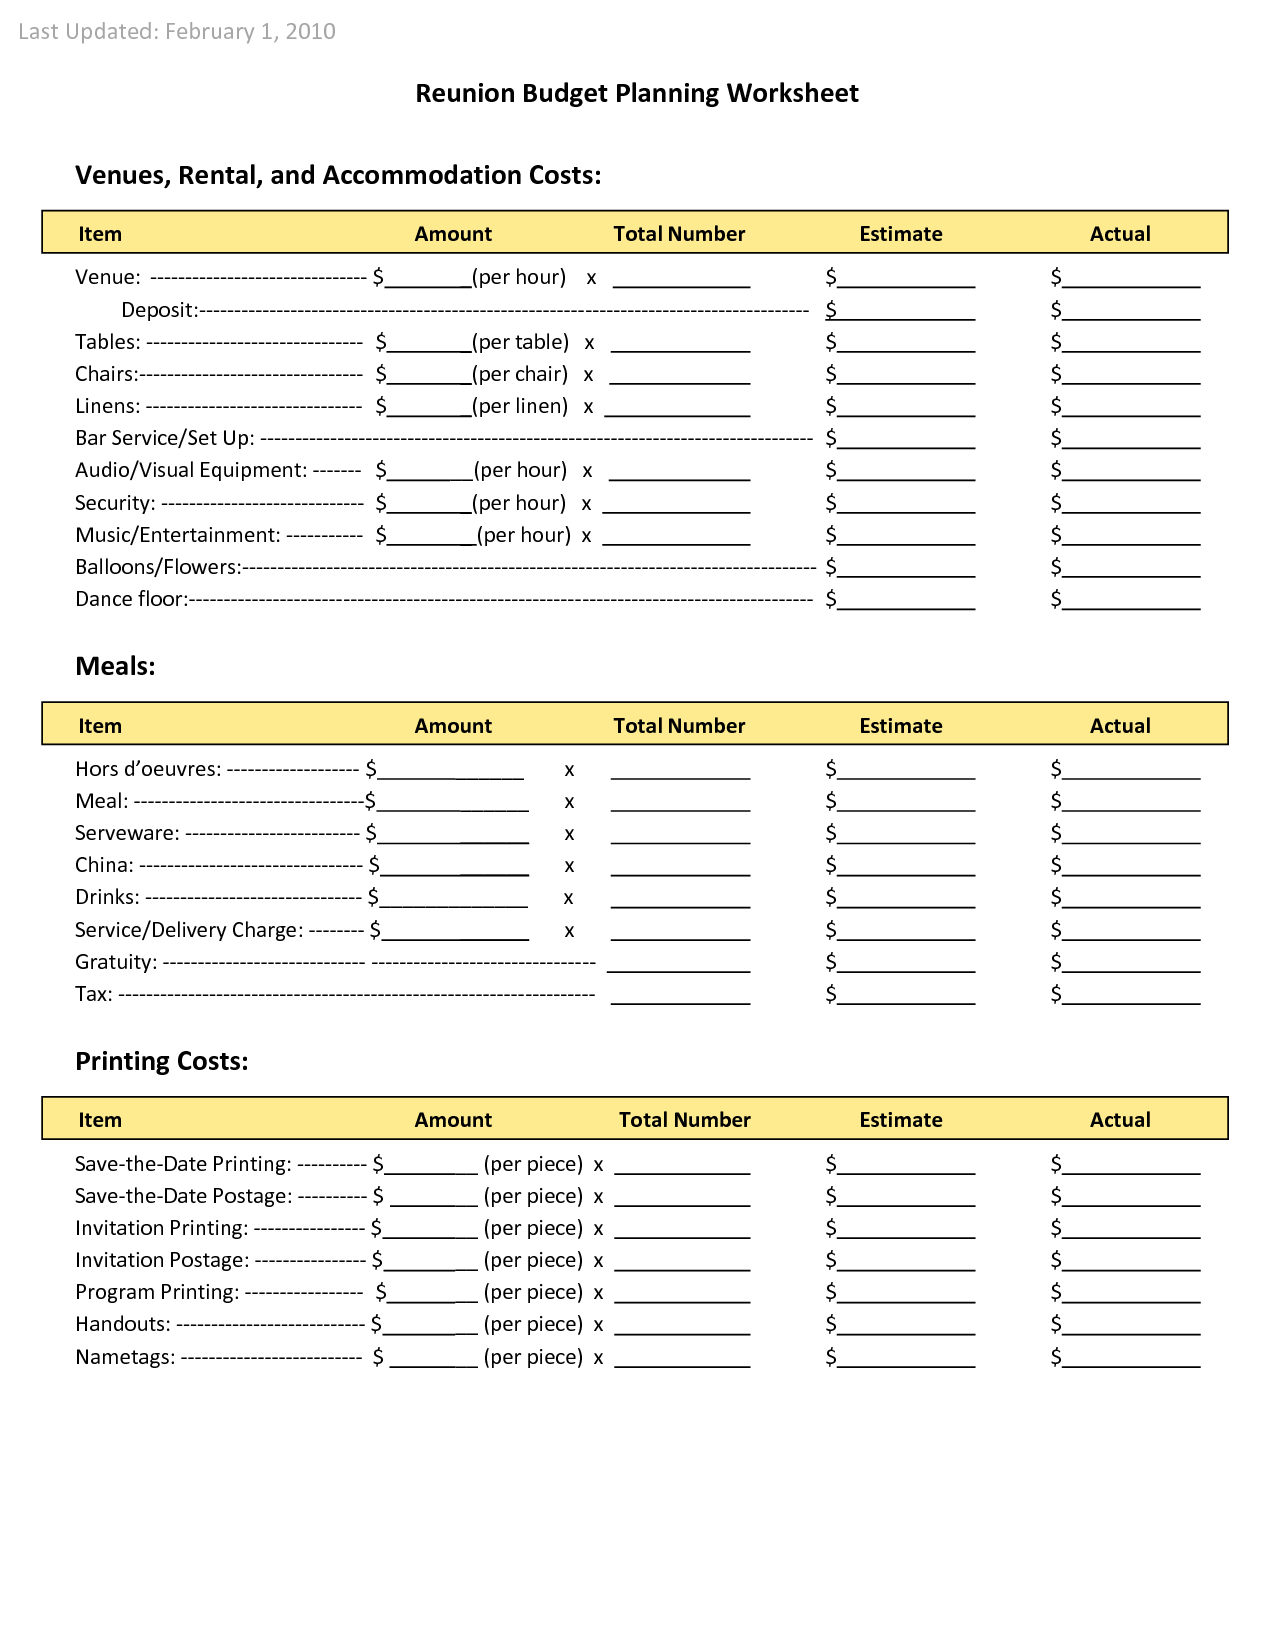 Budget Worksheet Examples and Family Reunion Planners Reunion Bud Planning Worksheet Venues